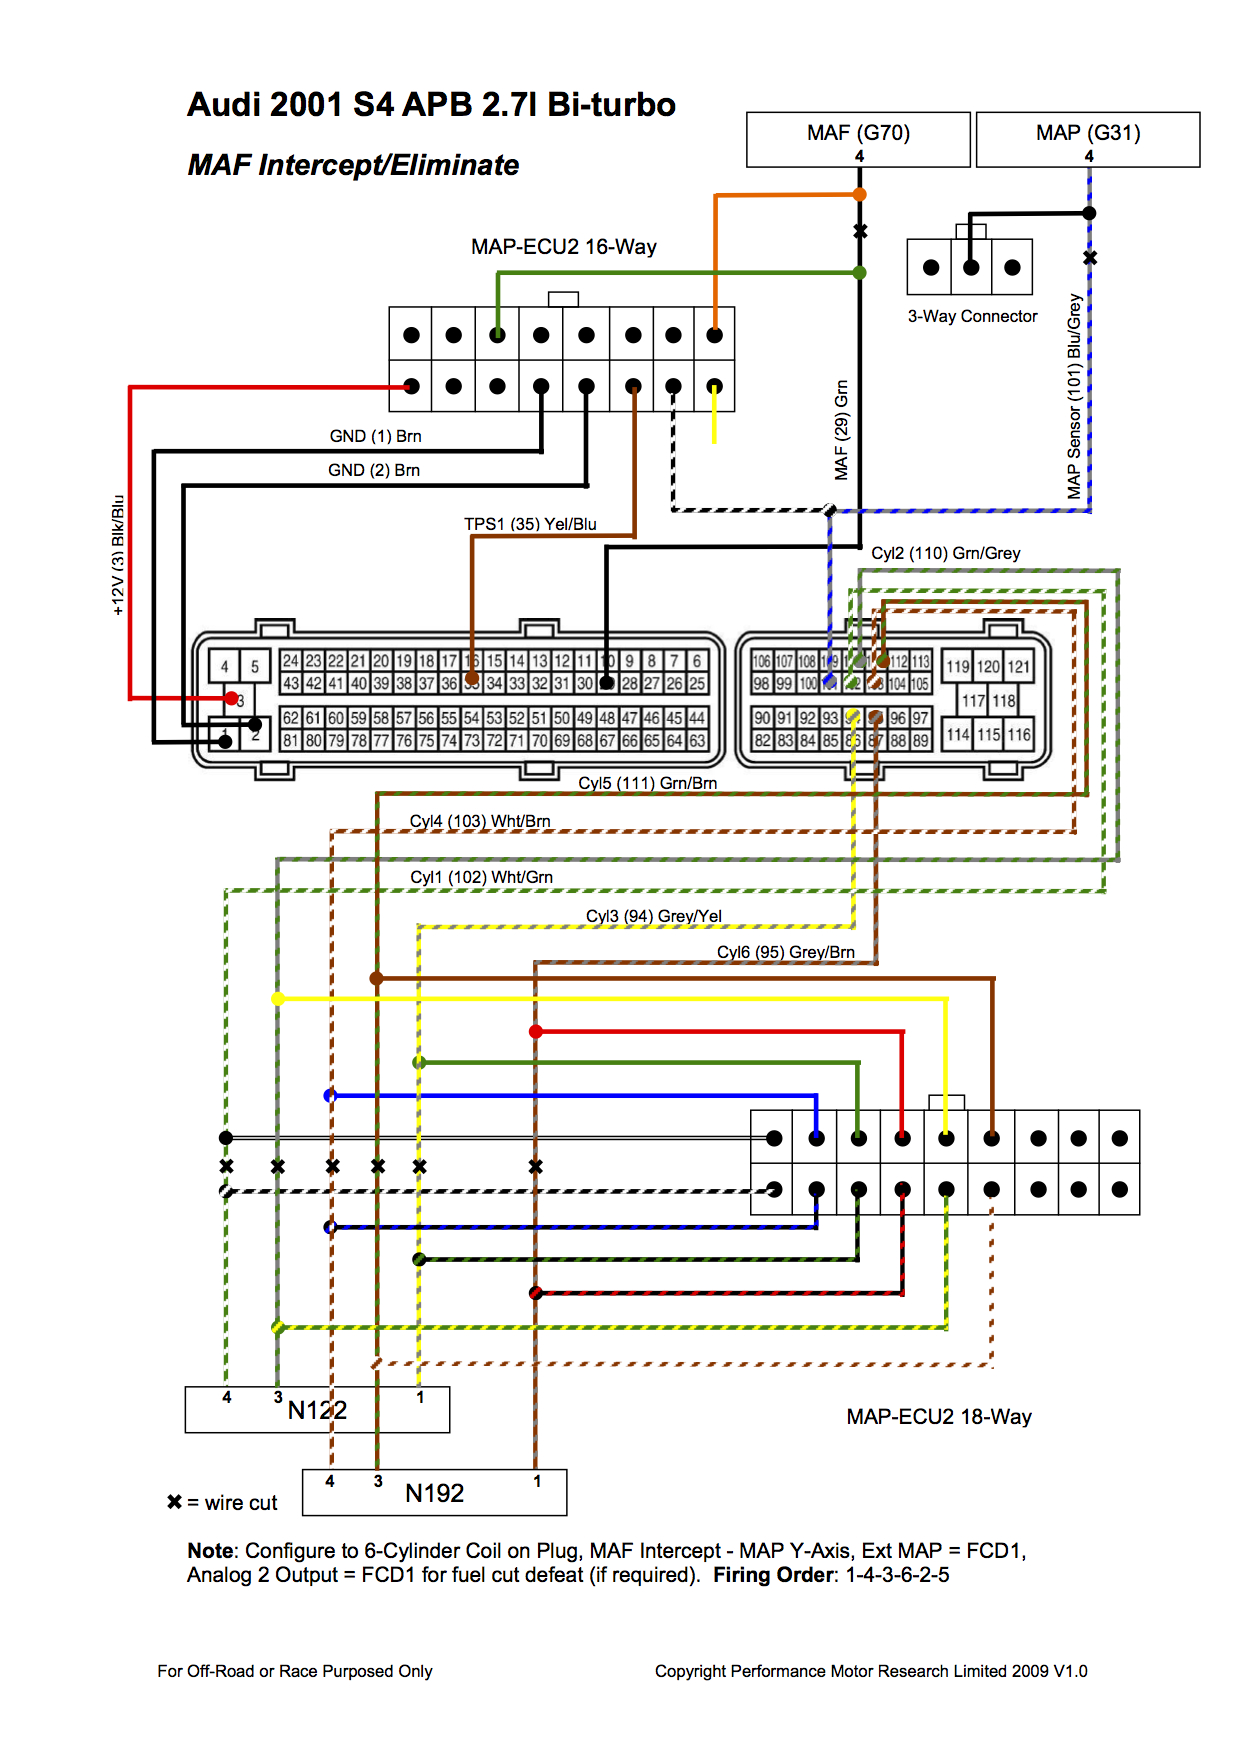 DIAGRAM] R32 Wiring Diagram FULL Version HD Quality Wiring Diagram -  ESCOLALIVRE.ARCIERIARCOBALENO.ITescolalivre.arcieriarcobaleno.it